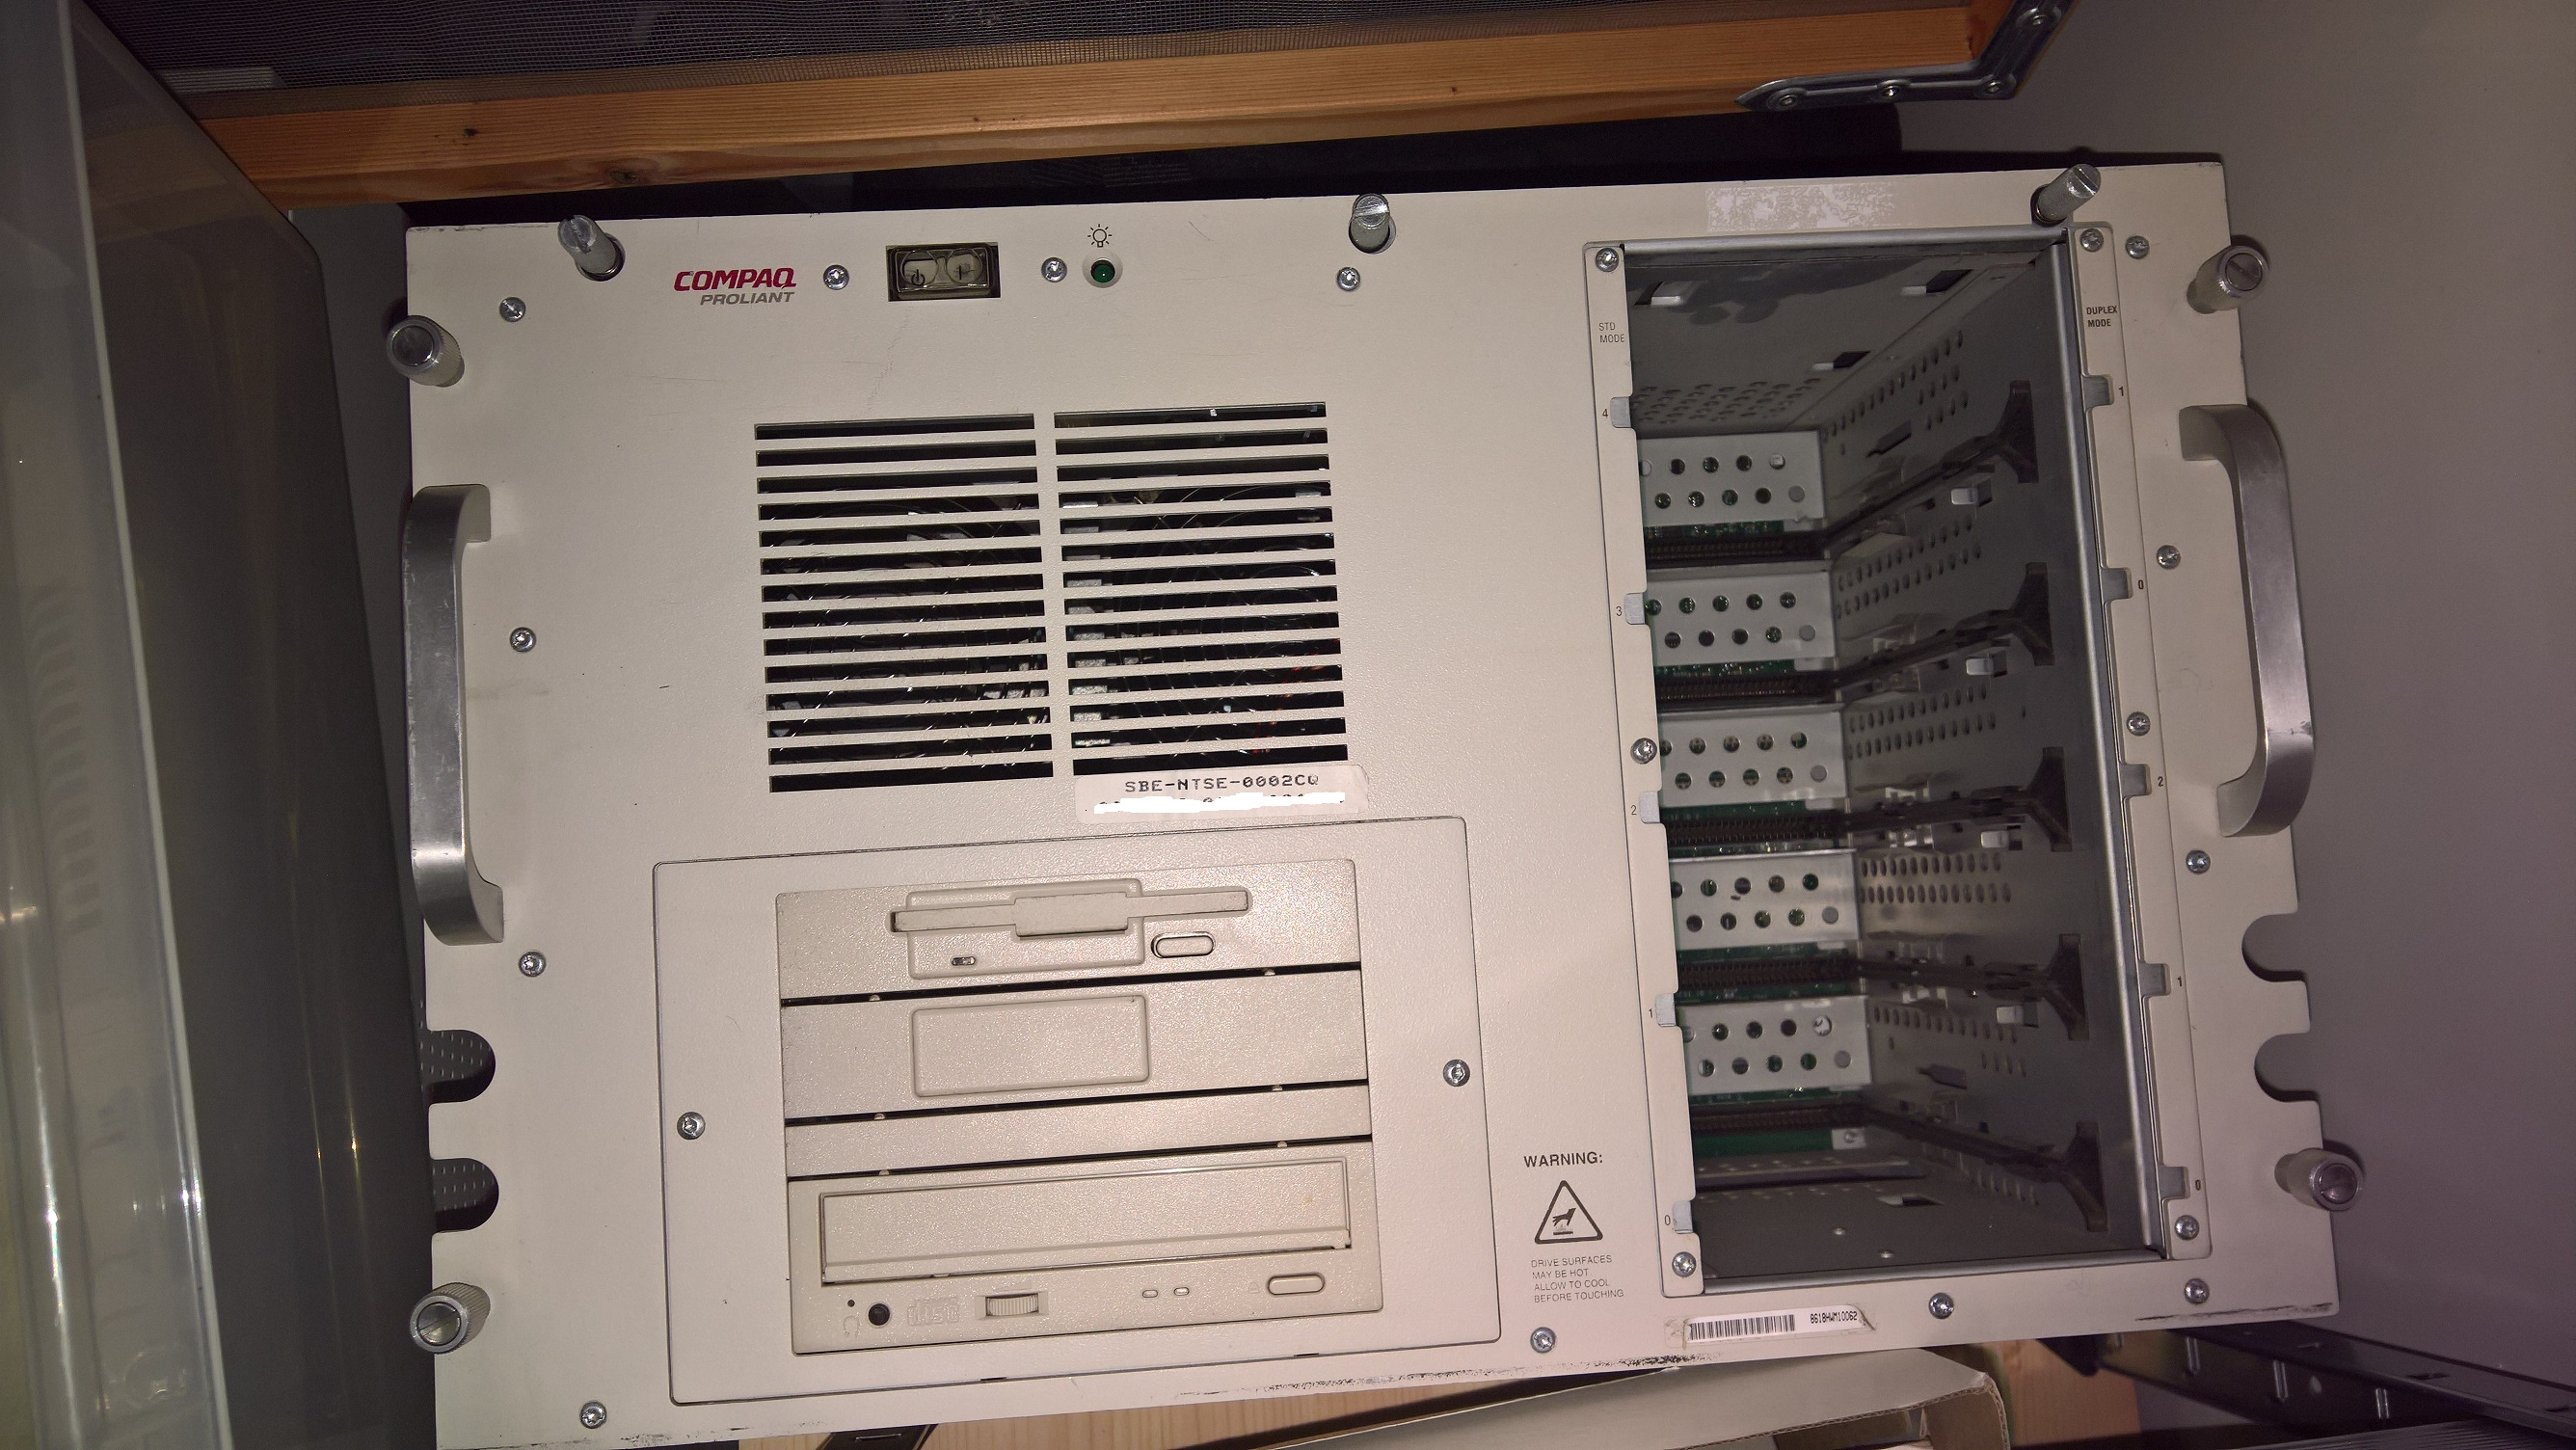 Proliant4500_rack.jpg